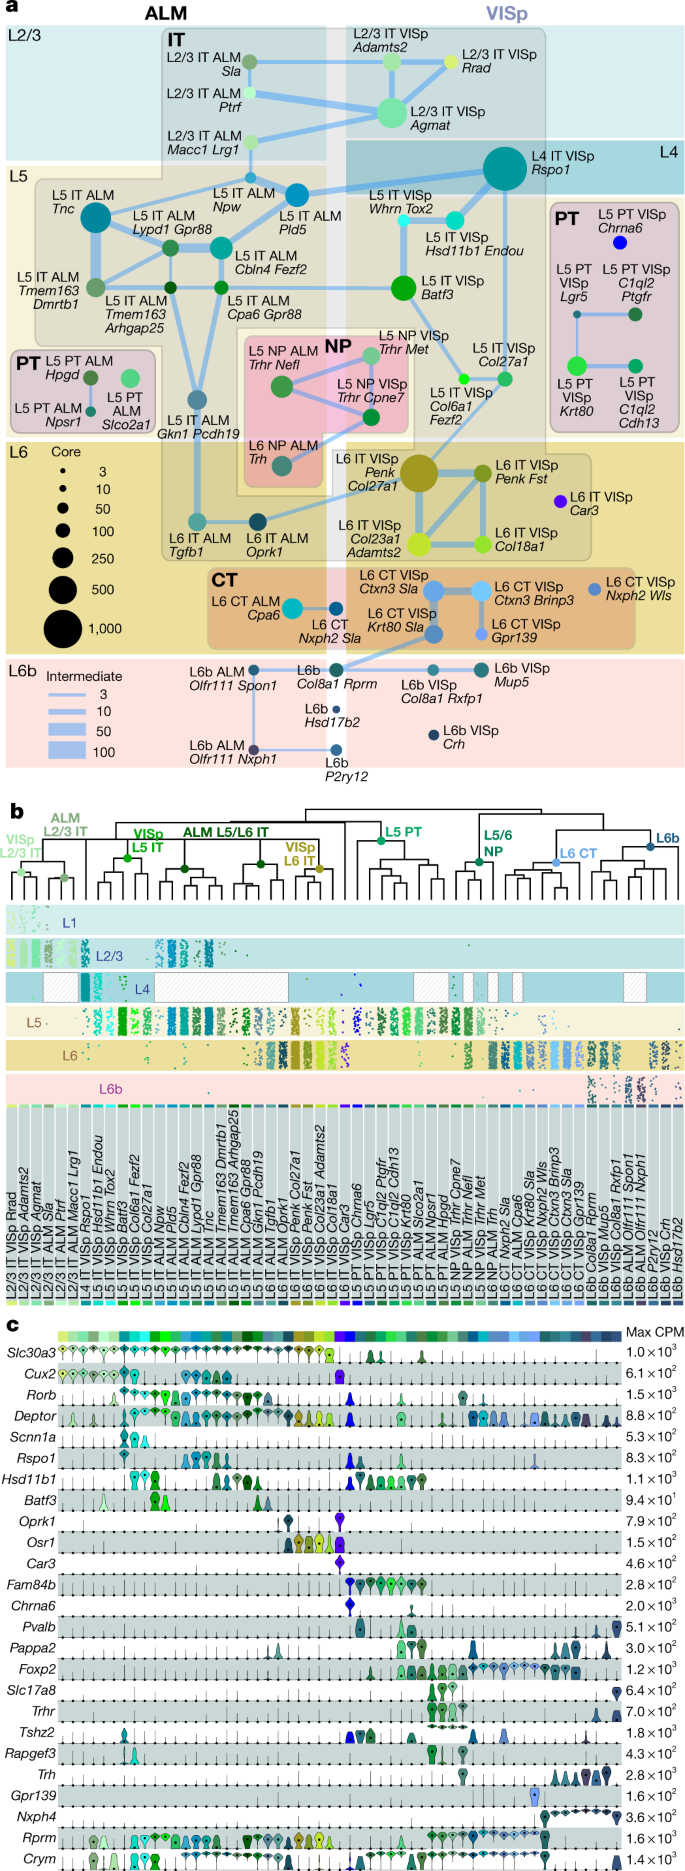 Shared and distinct transcriptomic cell types across